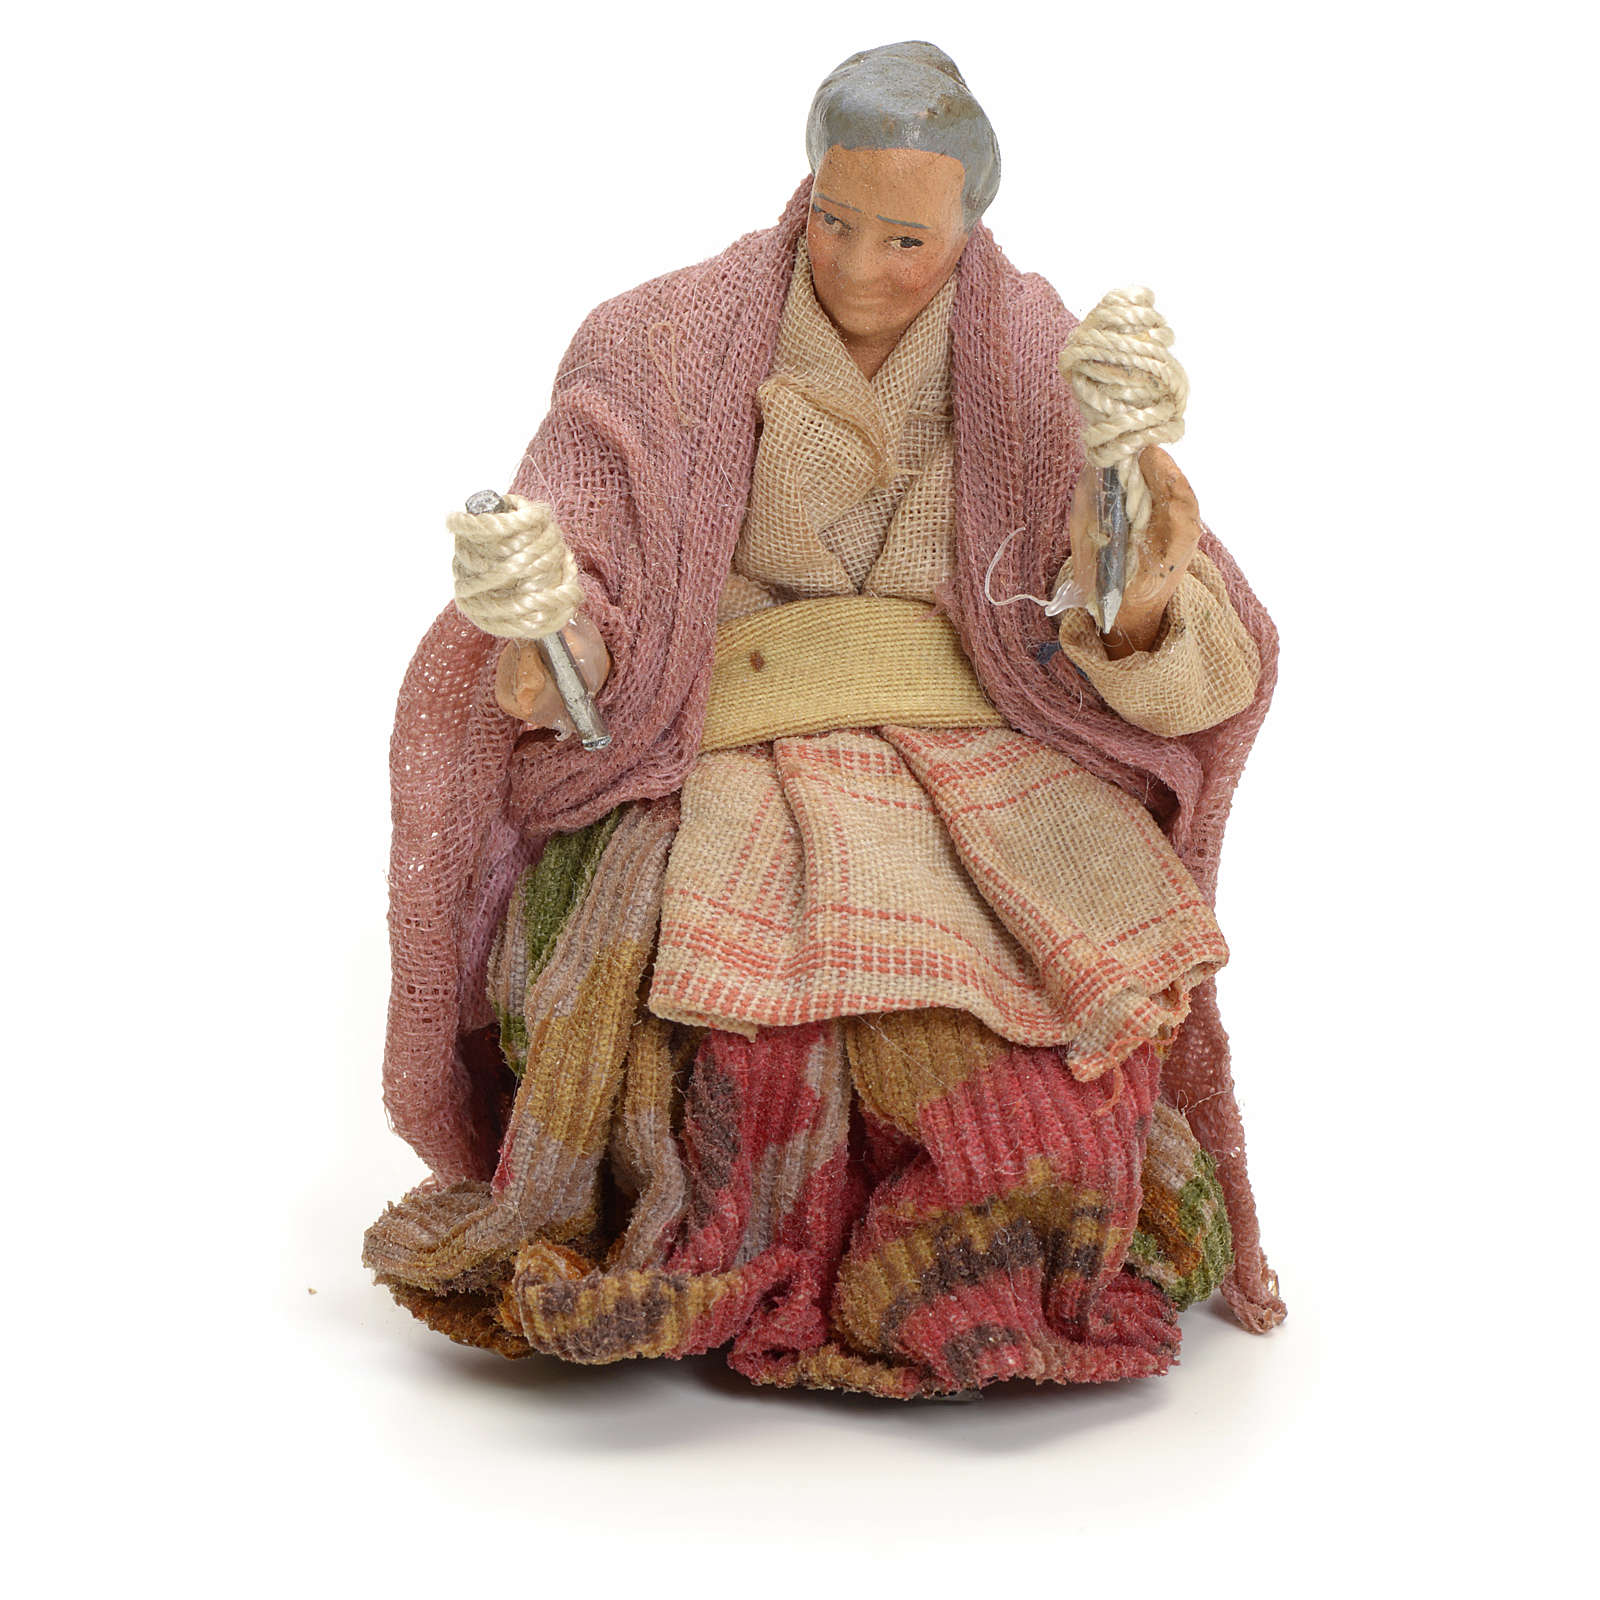 Neapolitan Nativity figurine, old lady with balls of thread, 8 c 4